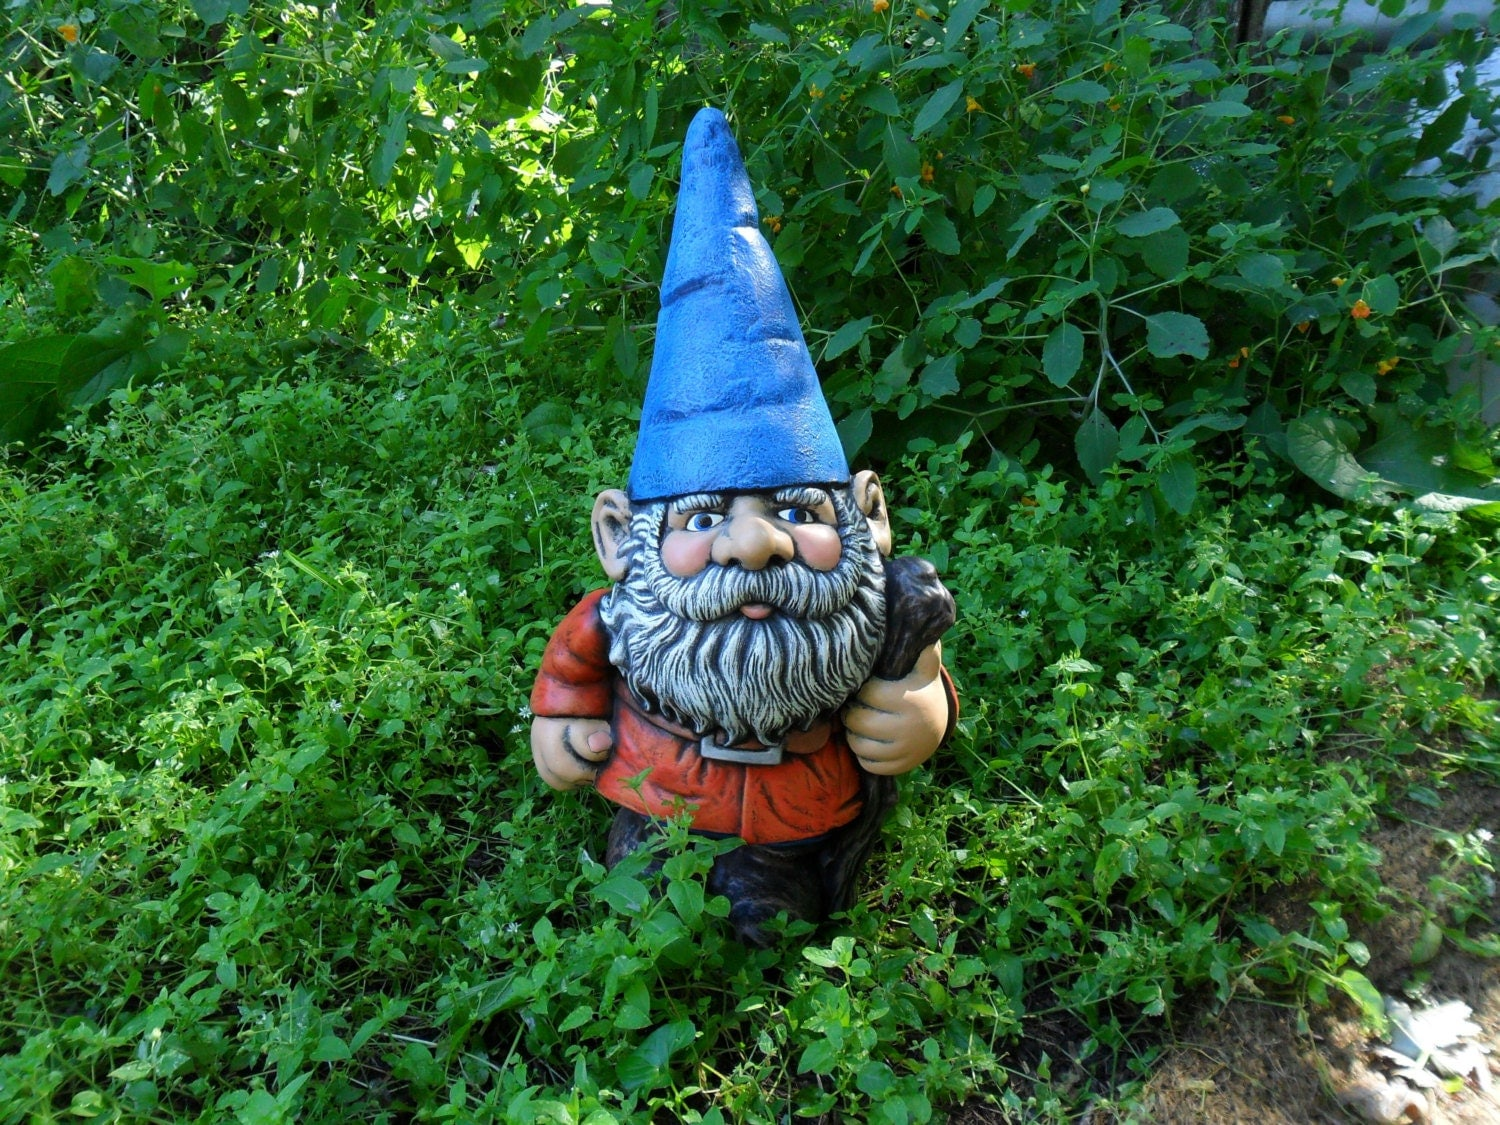 Gnome In Garden: Ceramic LARGE Gnome 21 Inches Hand Made Painted Lawn Or